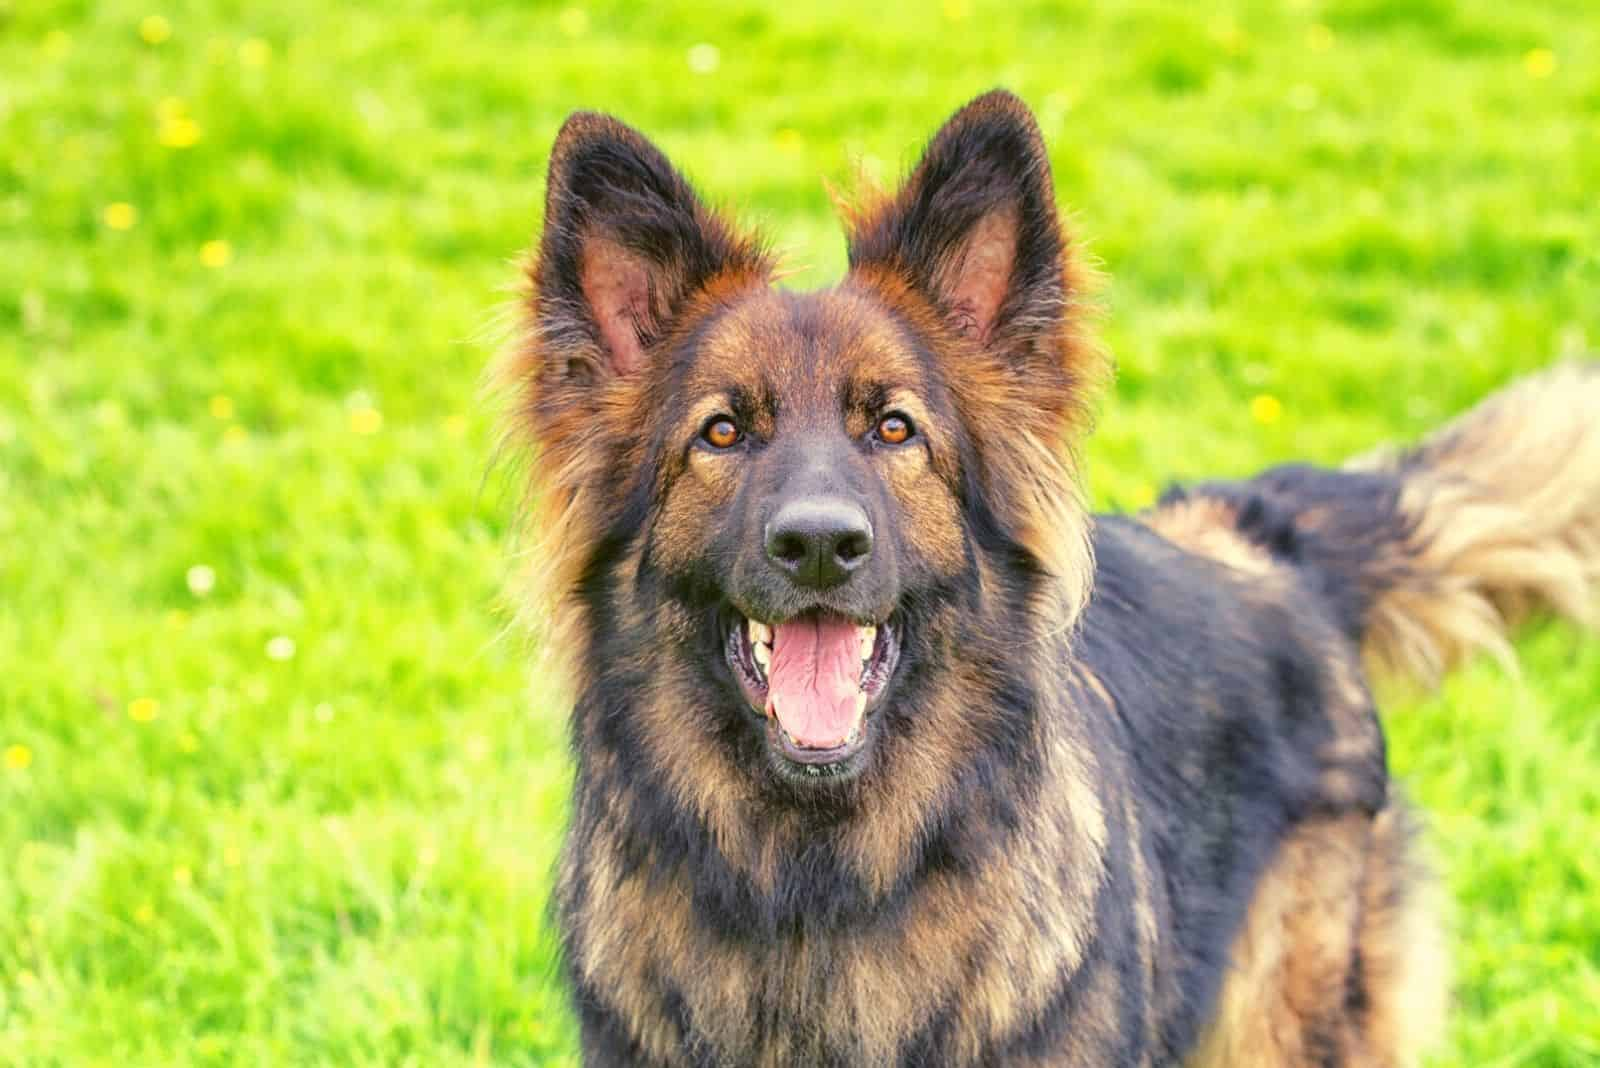 Excited German Shepherd Dog stood on grass barking at the camera